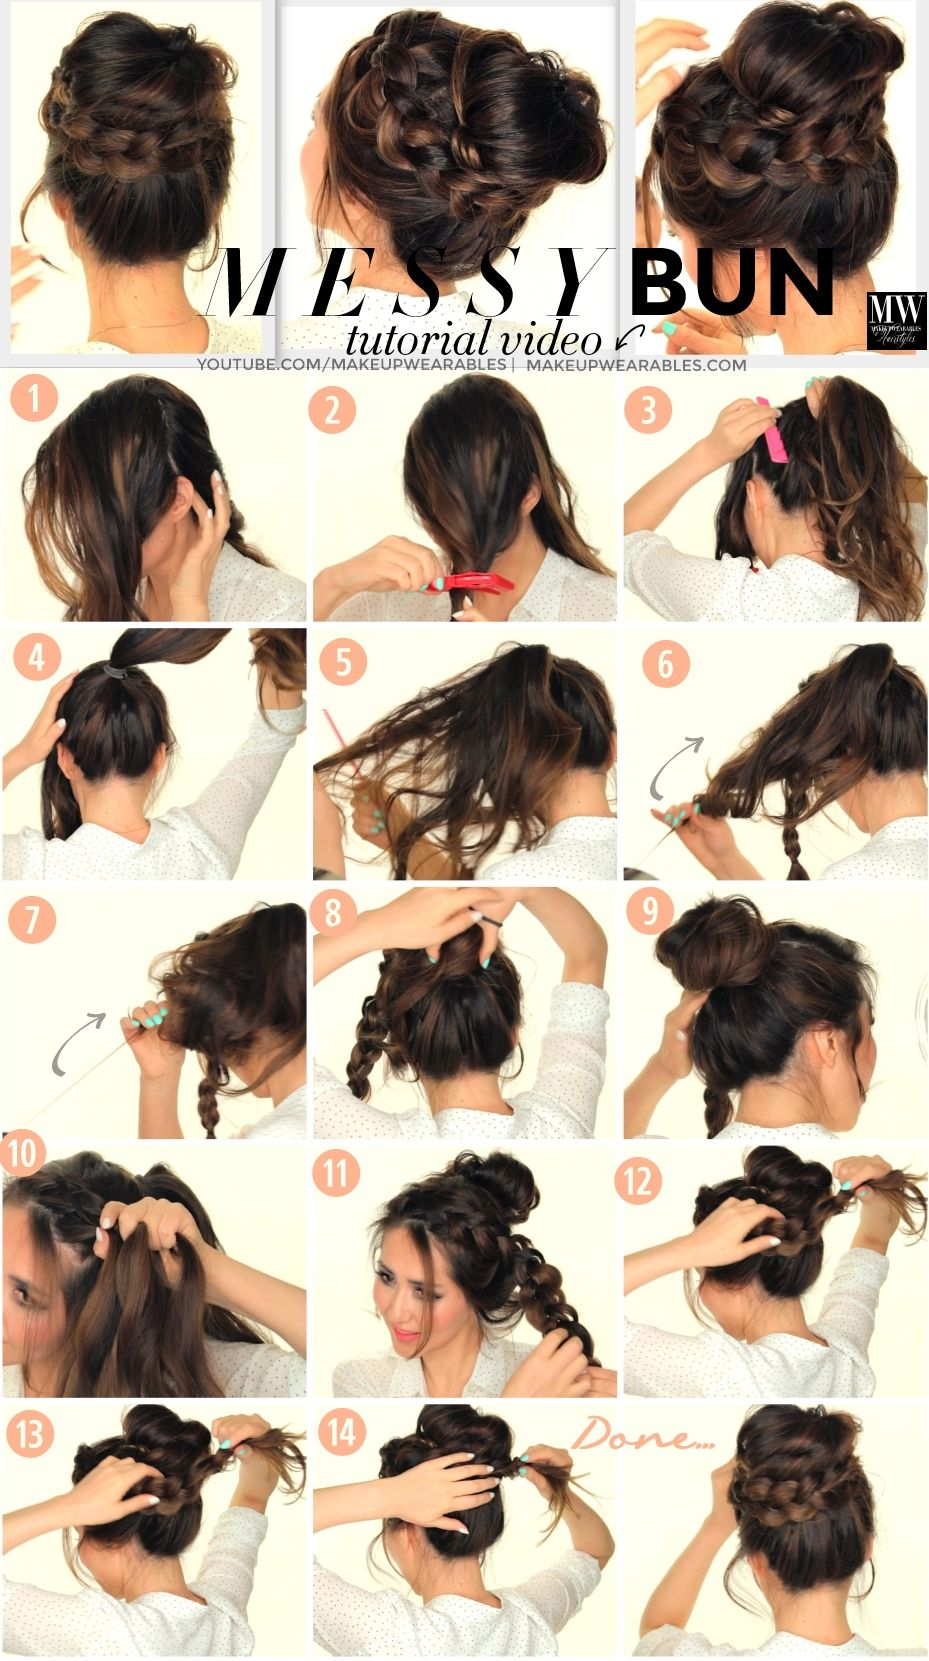 best hairstyle for office | everyday hairstyles | long hair